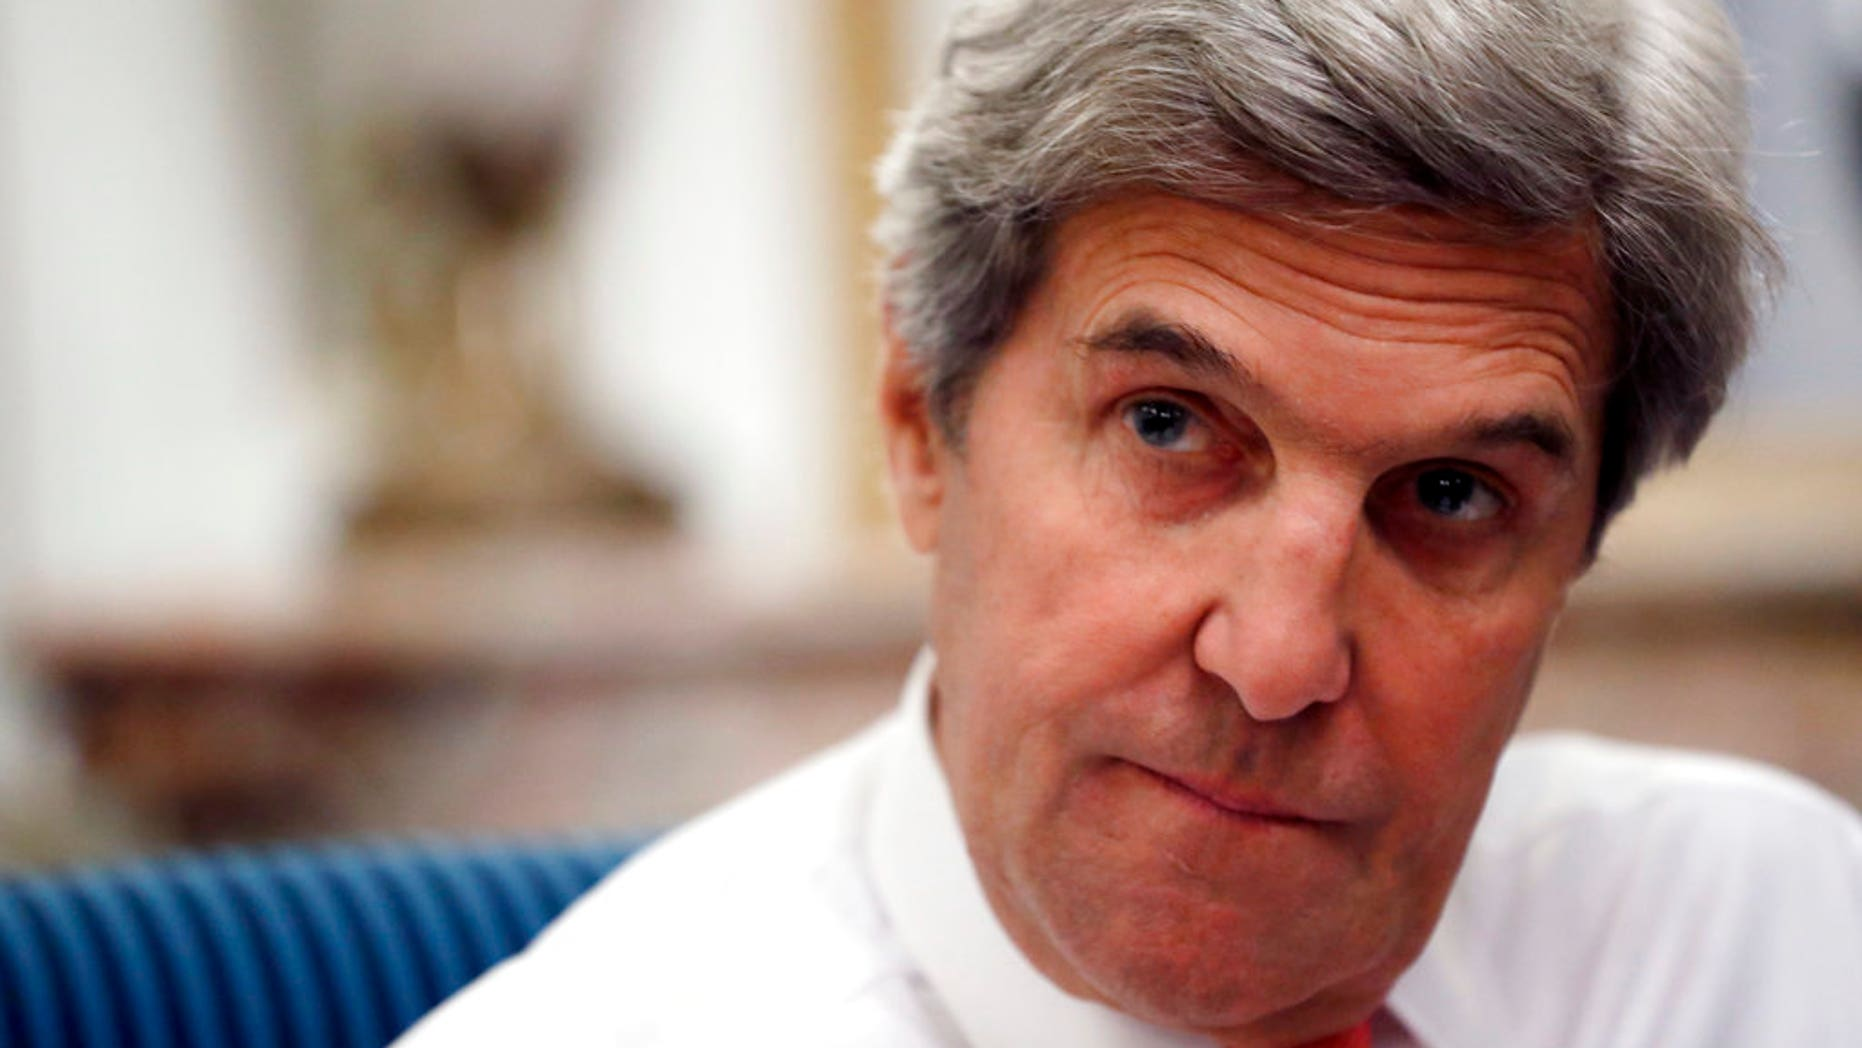 FILE: U.S Secretary of State John Kerry speaks with the media after attending the Mideast peace conference in Paris.